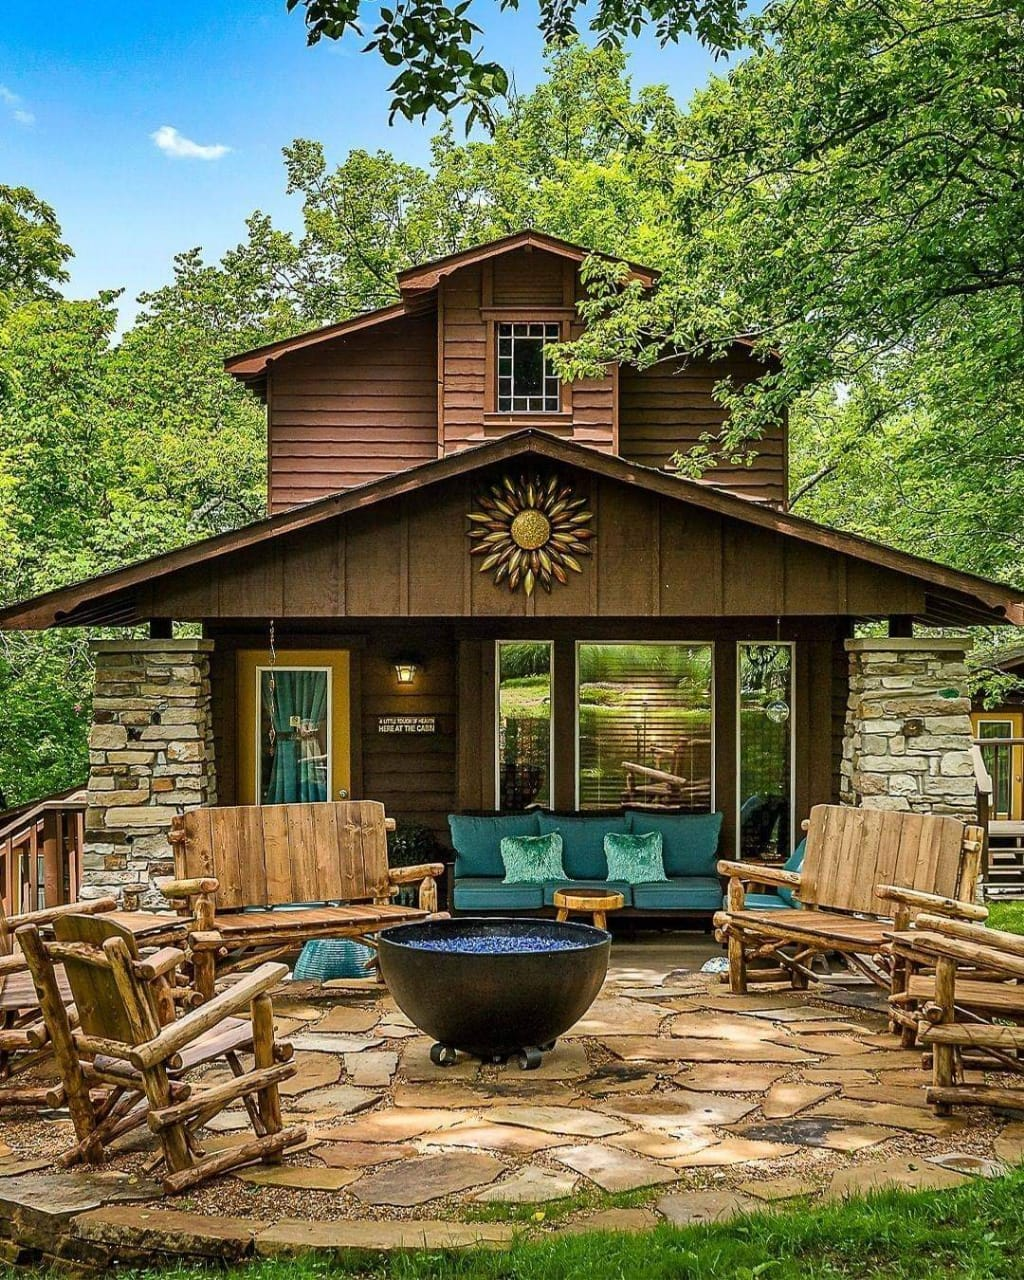 Mind-blowing cabin exterior set up - Source: The Woods Cabins